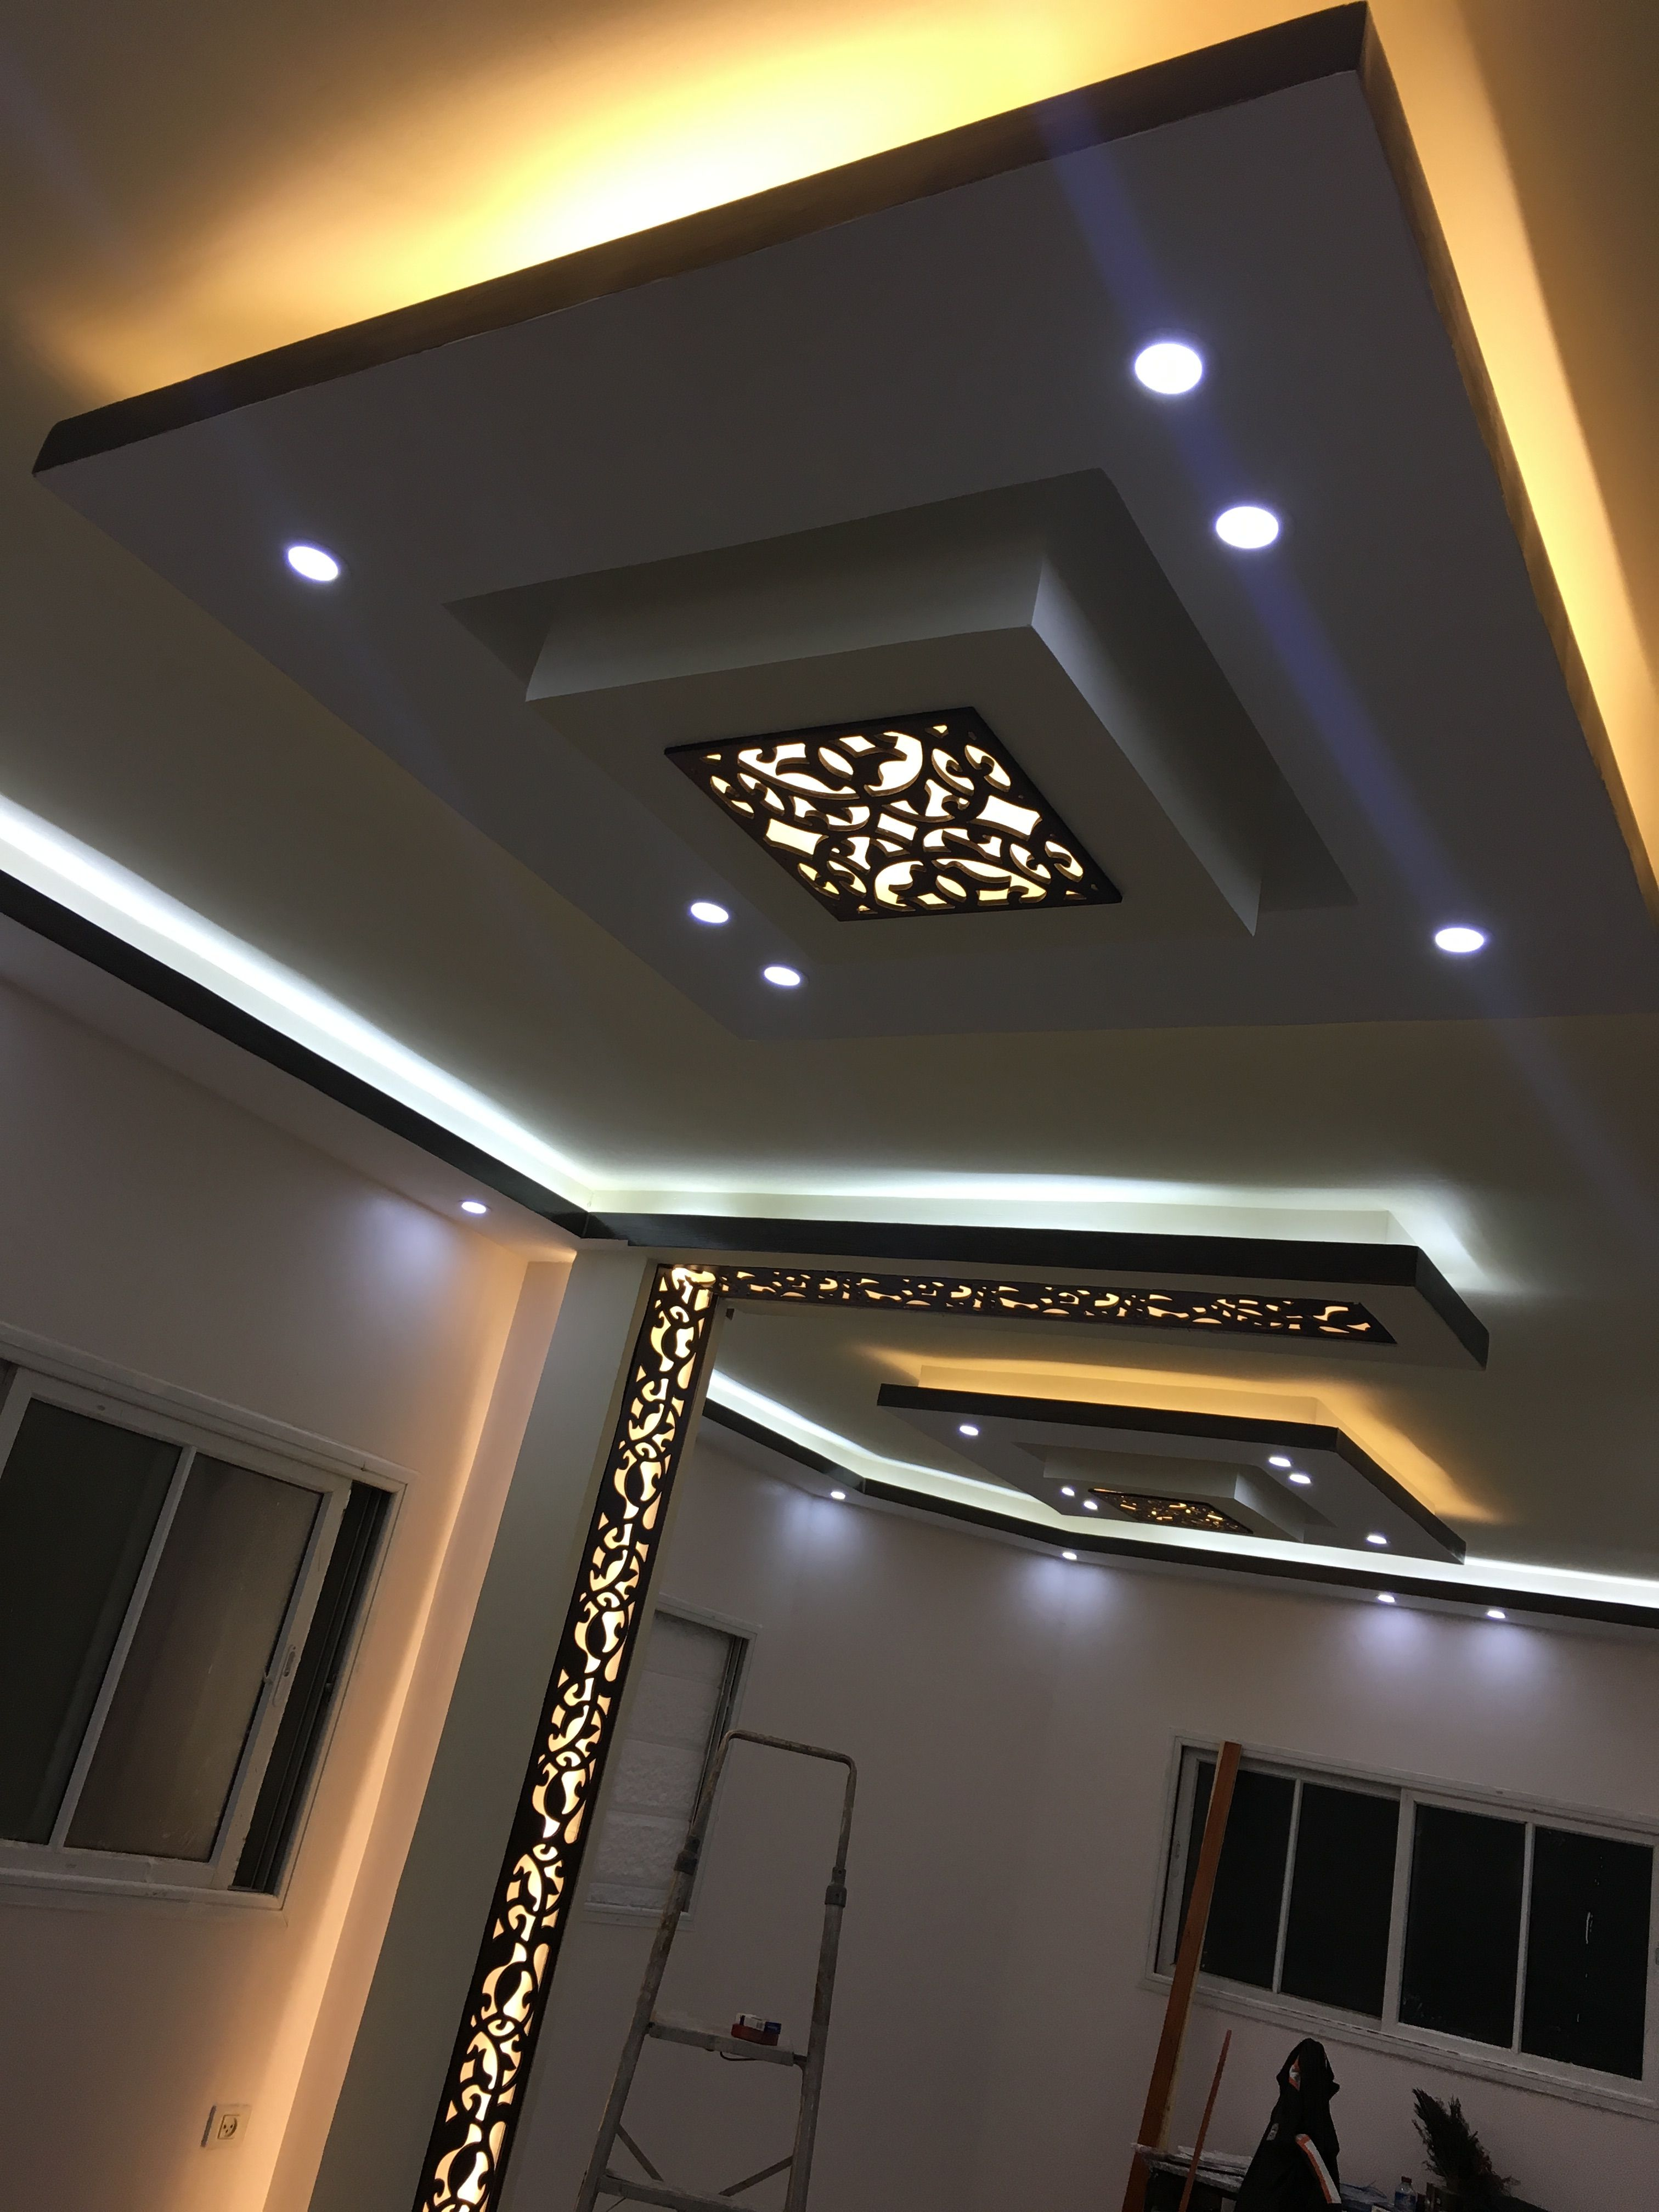 Cnc Lights Window Home Decorating Decor In 2019